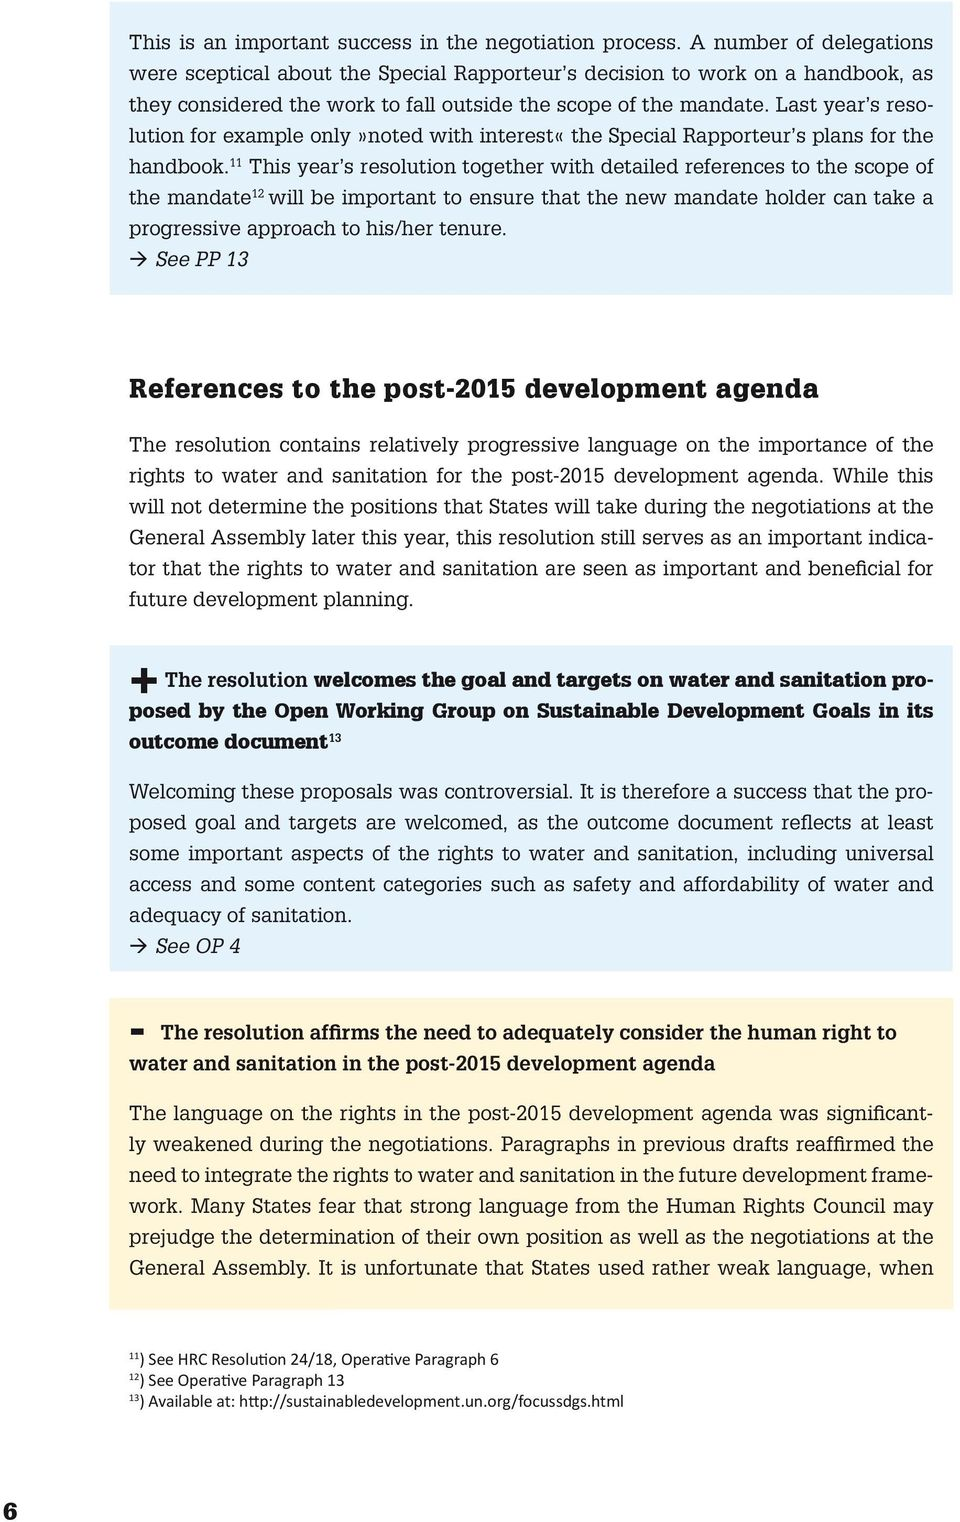 Last year s resolution for example only»noted with interest«the Special Rapporteur s plans for the handbook.